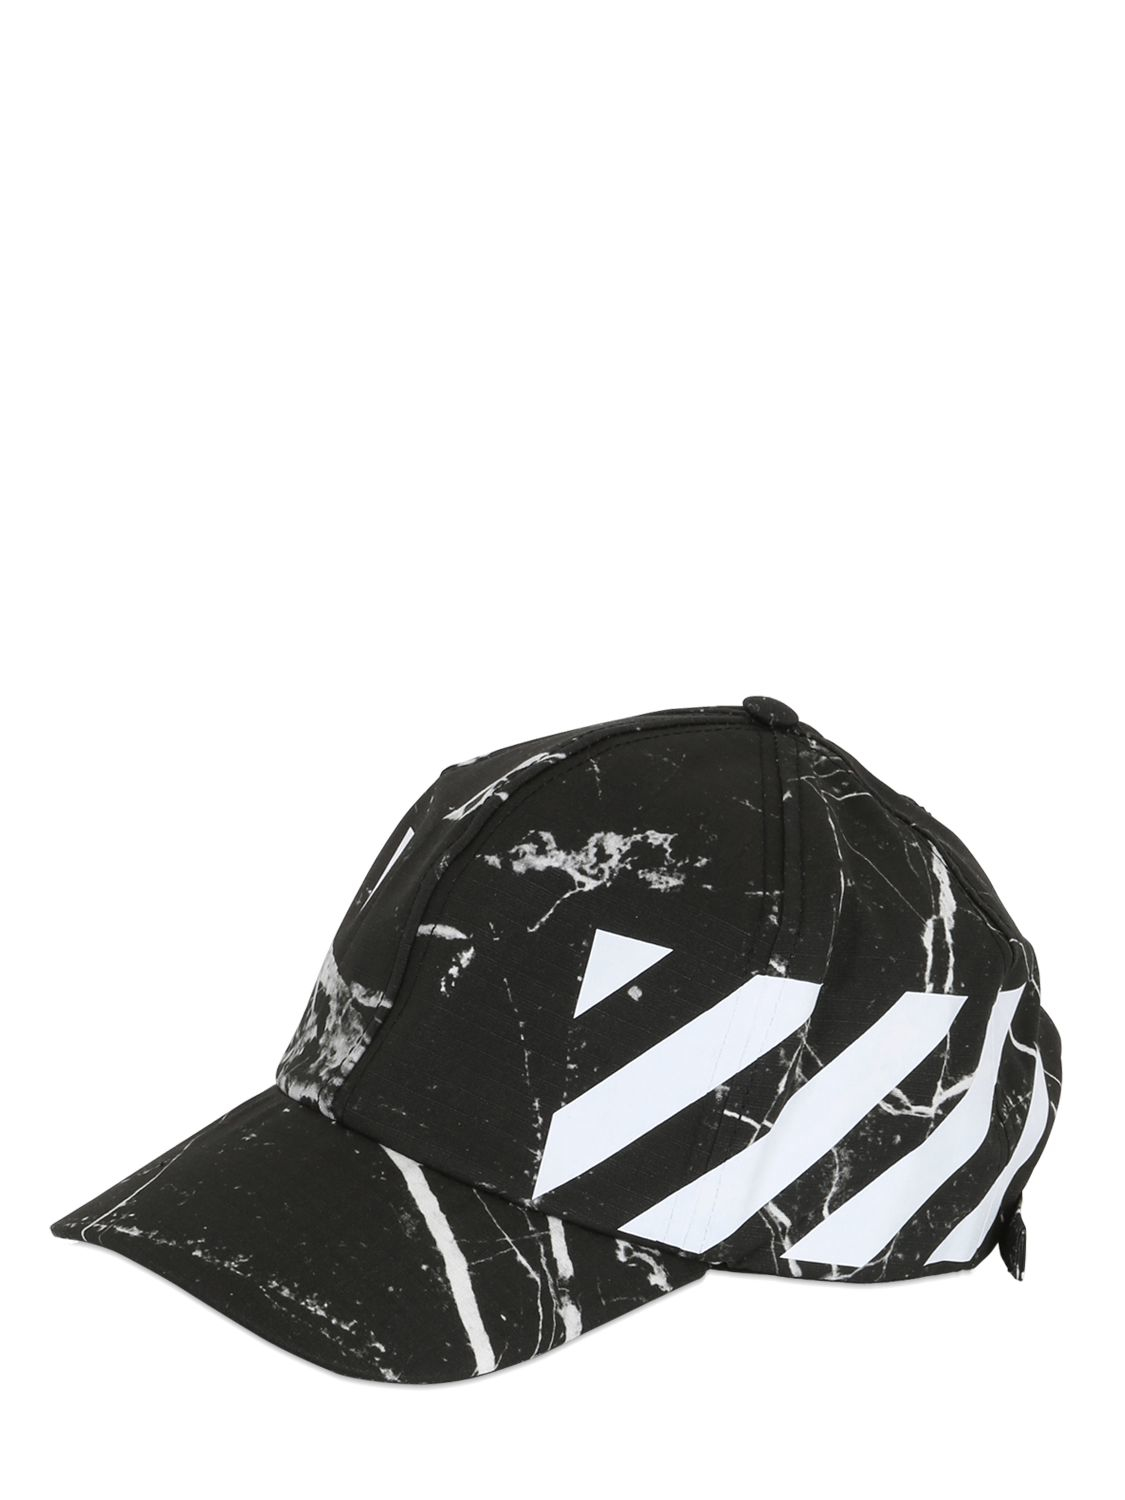 Lyst - Off-White c o Virgil Abloh Marble Cotton Canvas Baseball Hat ... 8c7ee5805a1